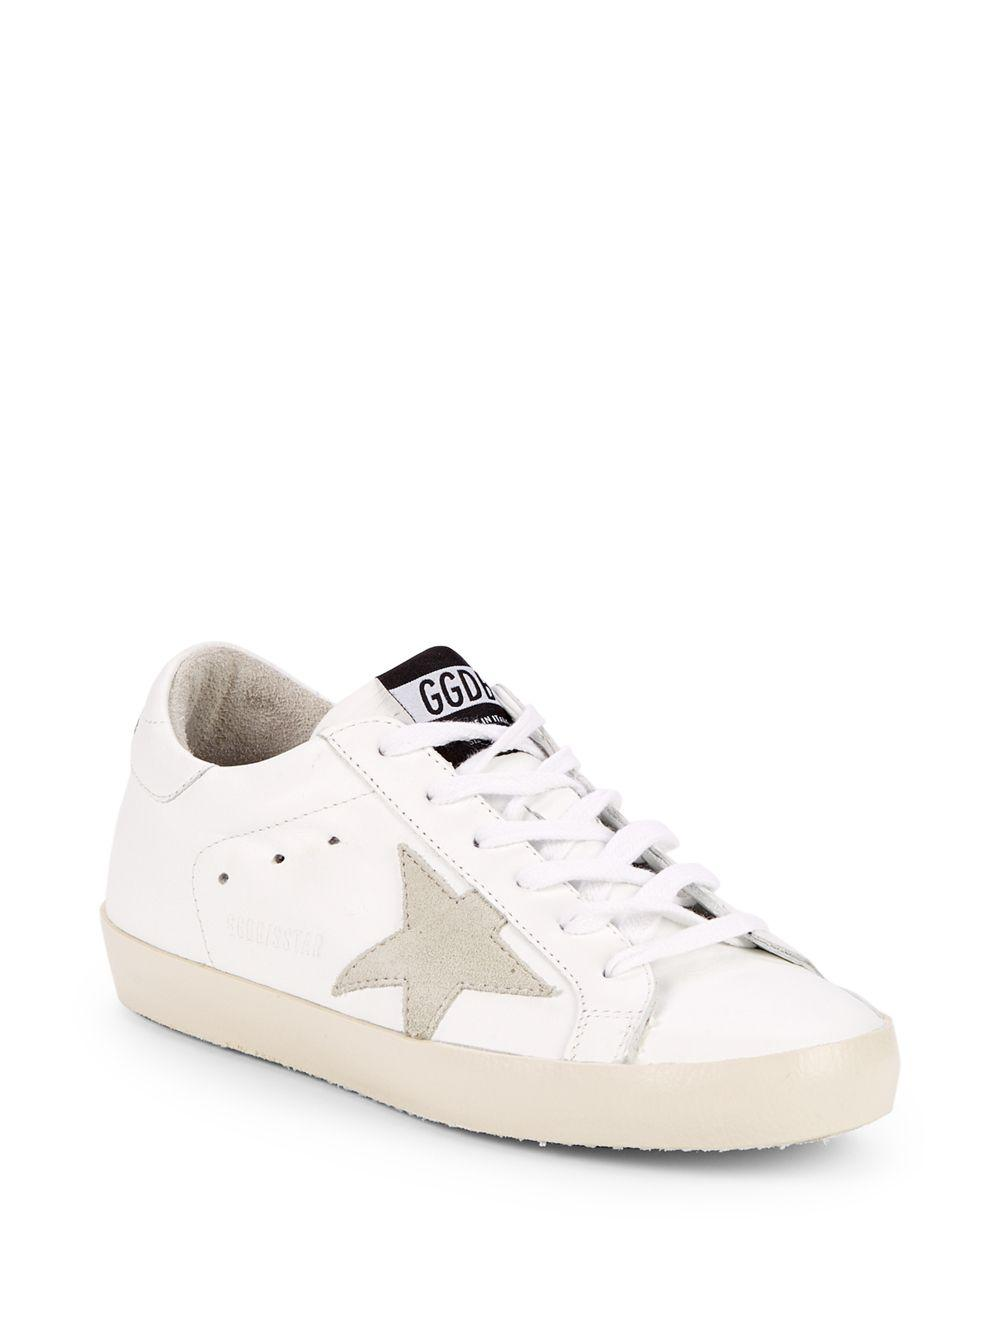 abe0370017b Golden Goose Deluxe Brand. Women s White Superstar Leather Low-top Sneakers